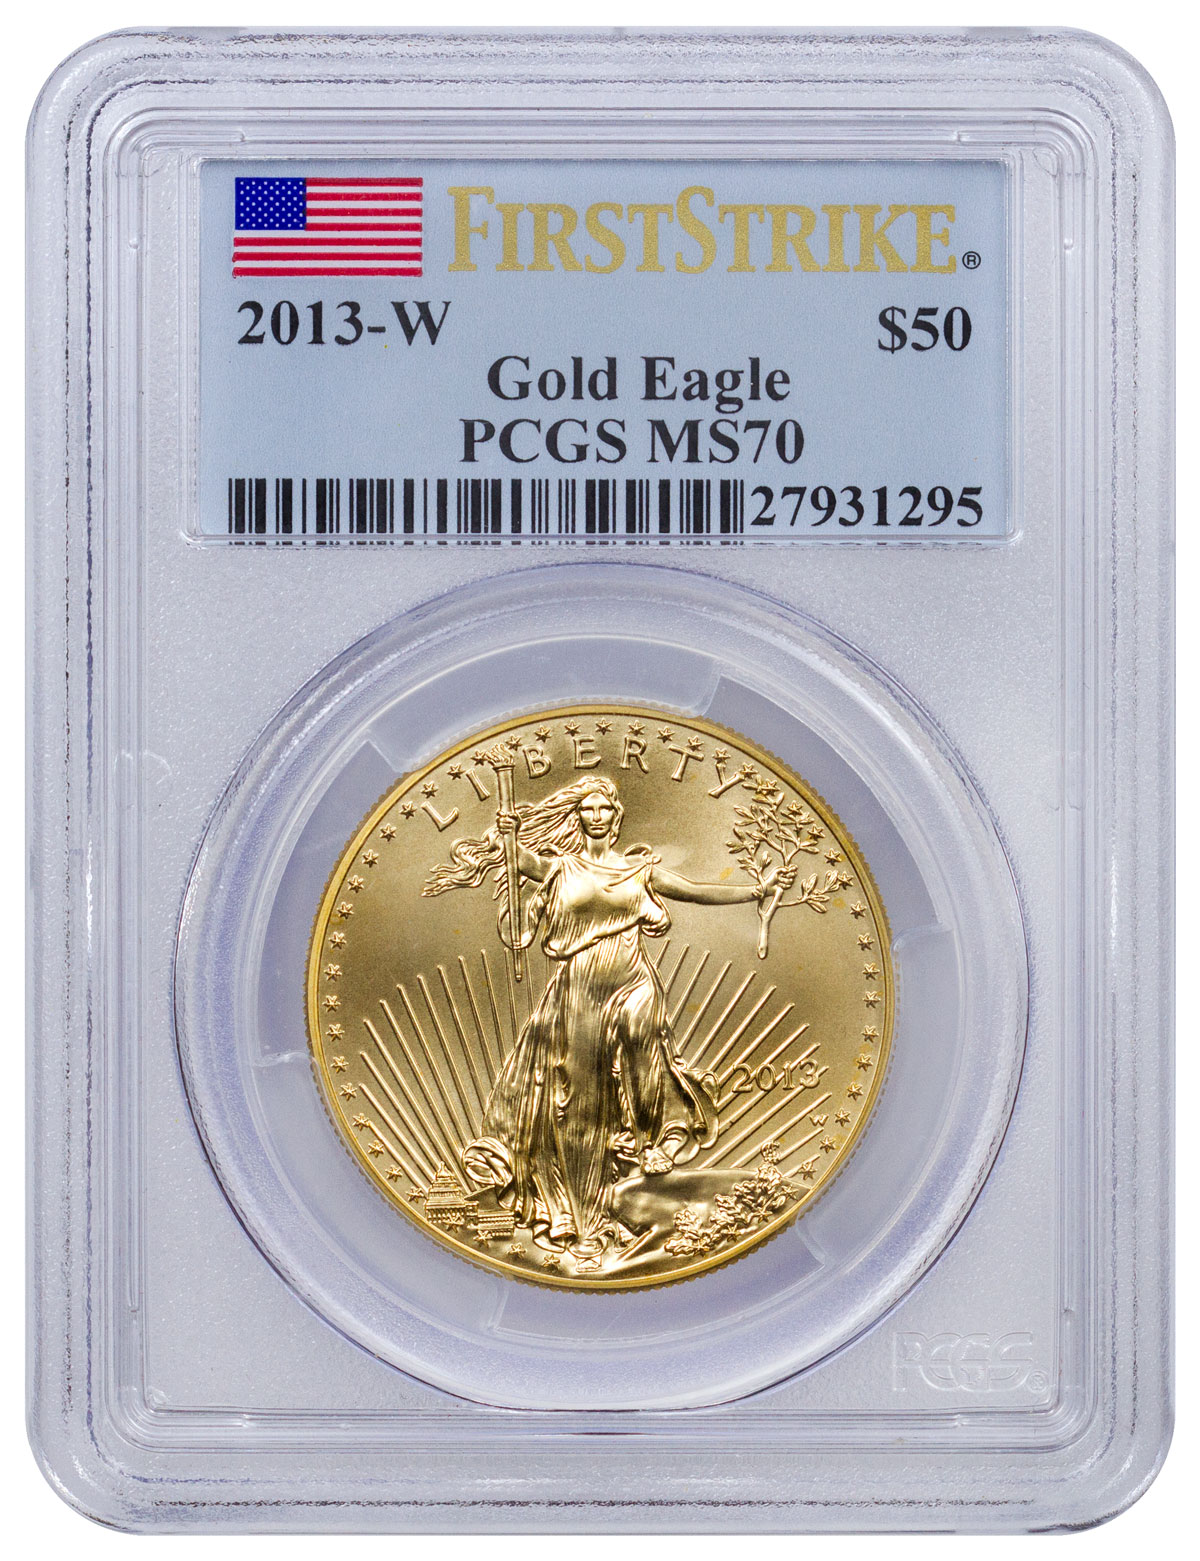 2013-W $50 1 oz. American Gold Eagle - PCGS MS70 First Strike